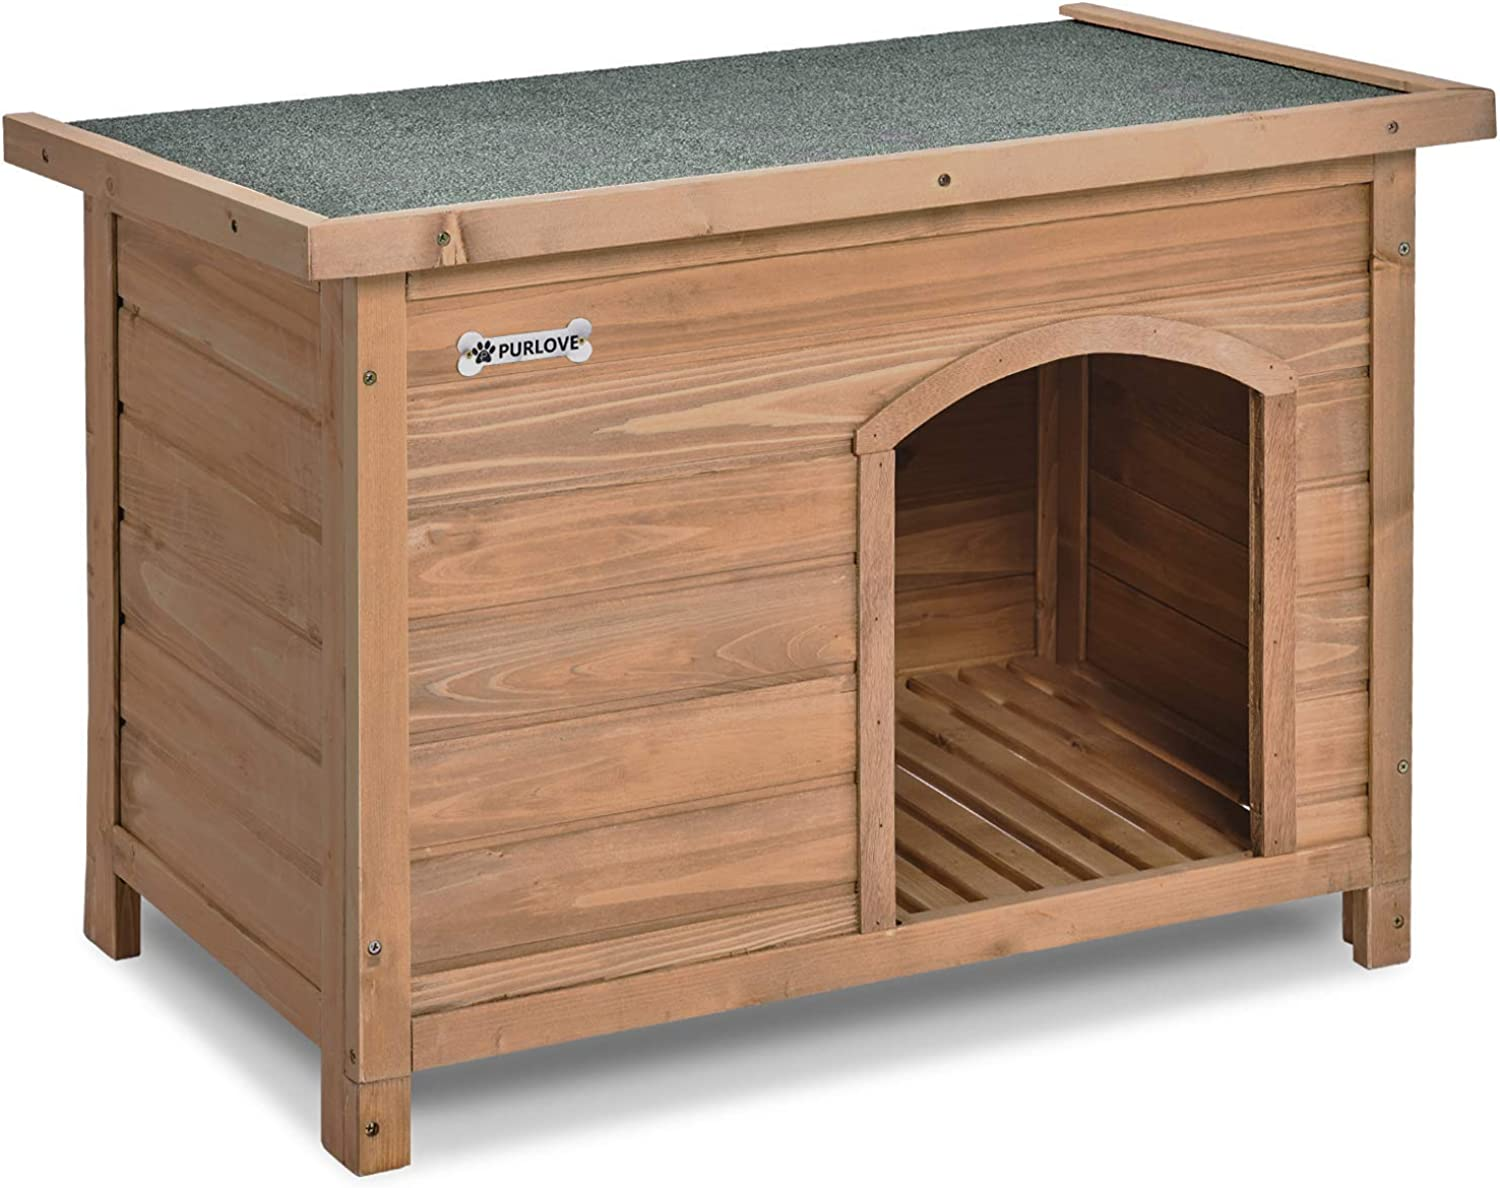 SHINING Large Dog Kennel Solid Wooden Outdoor Indoor Dog Pet House Garden Crate with Removable Floor and Openable Slanted Roof For Easy Cleaning Weatherproof Asphalt (L)